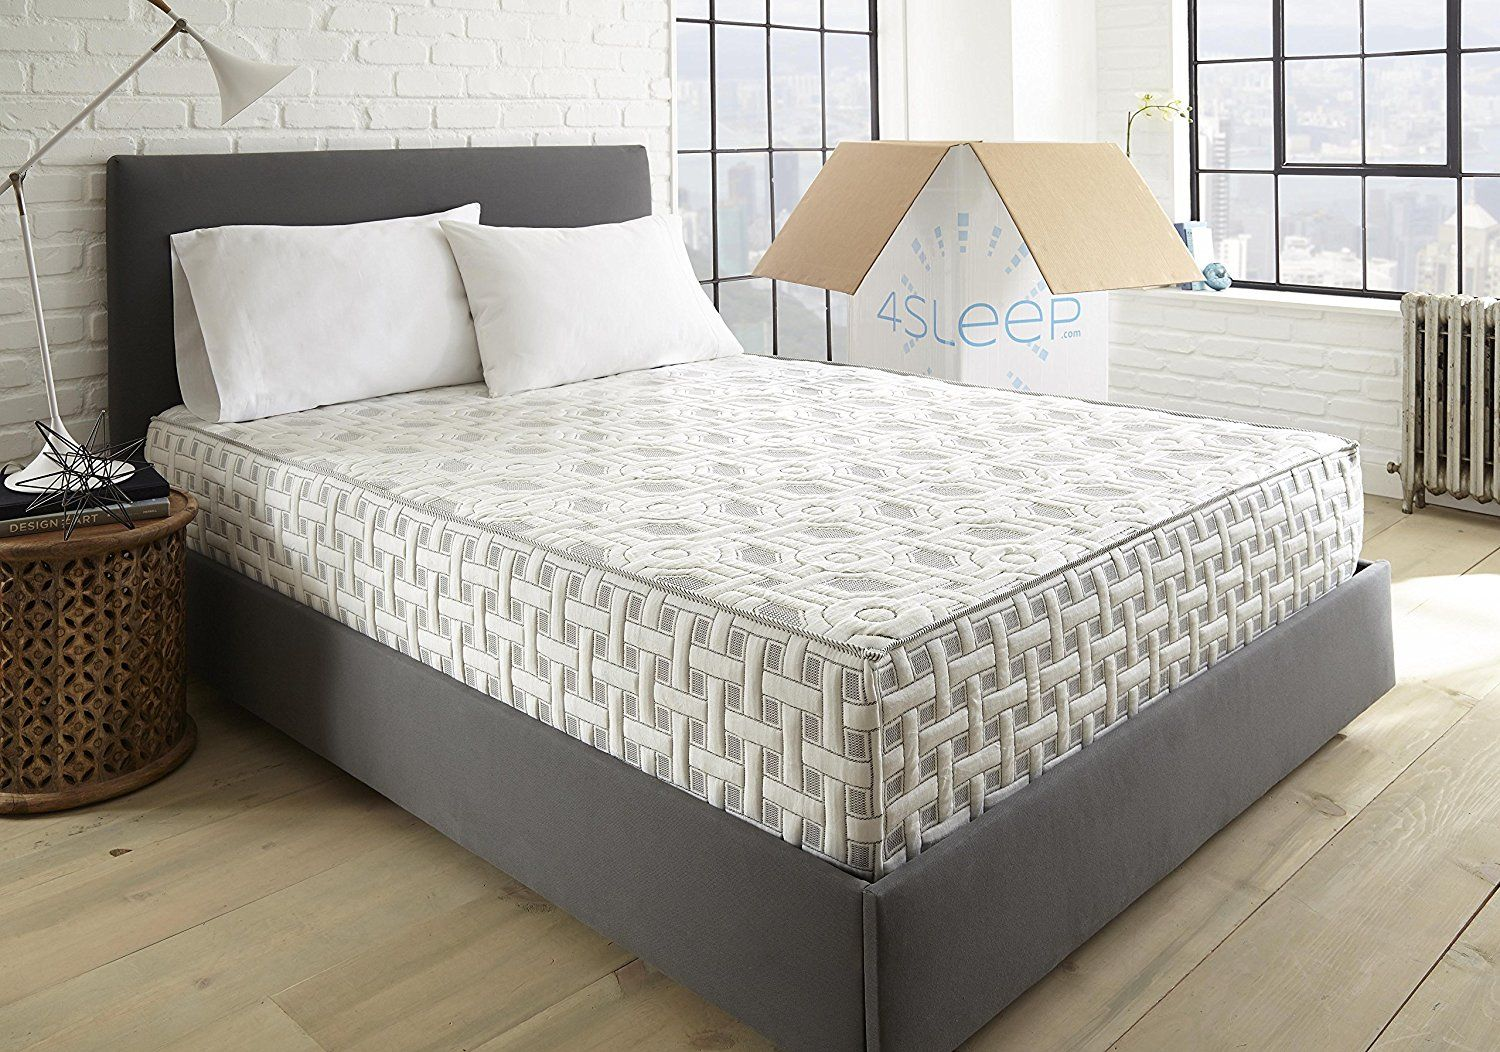 4sleep mattress 100 usa made 10 year warranty twin